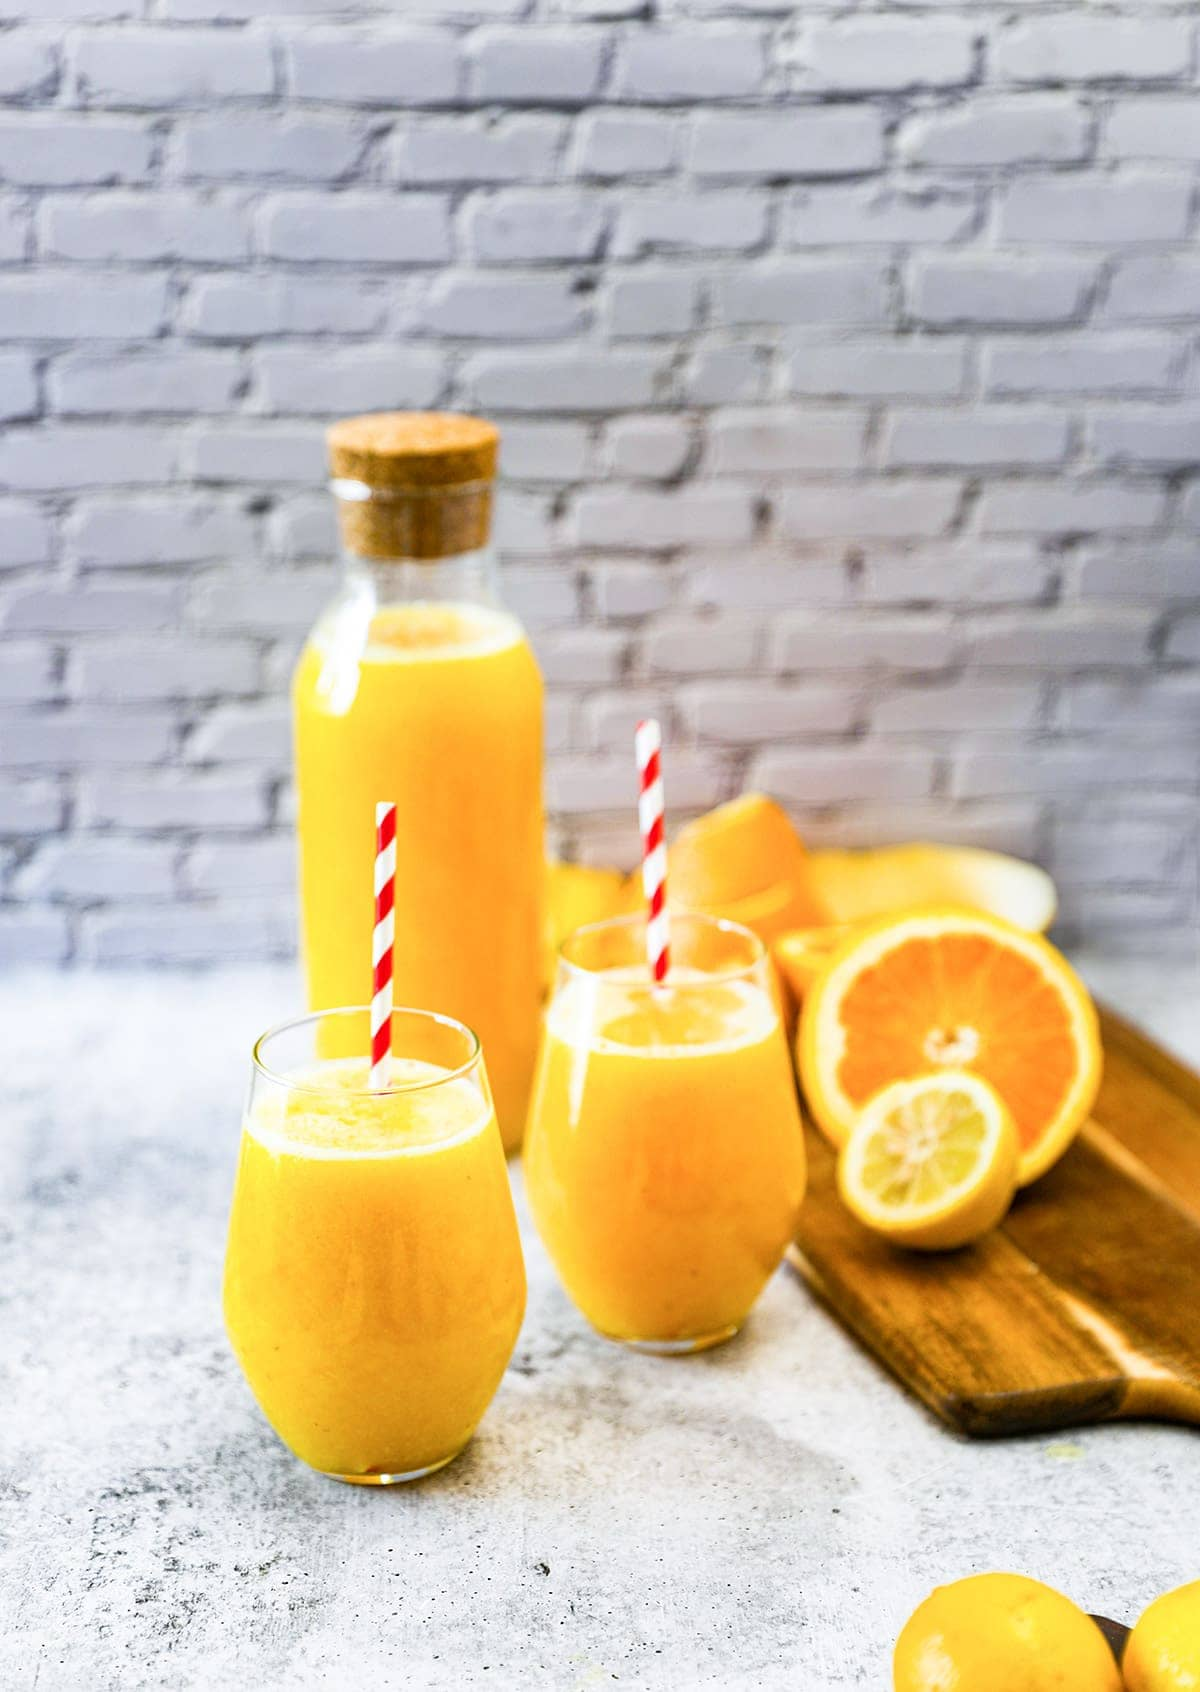 orange lemonade in glass flask and glasses with sraw on a grey background